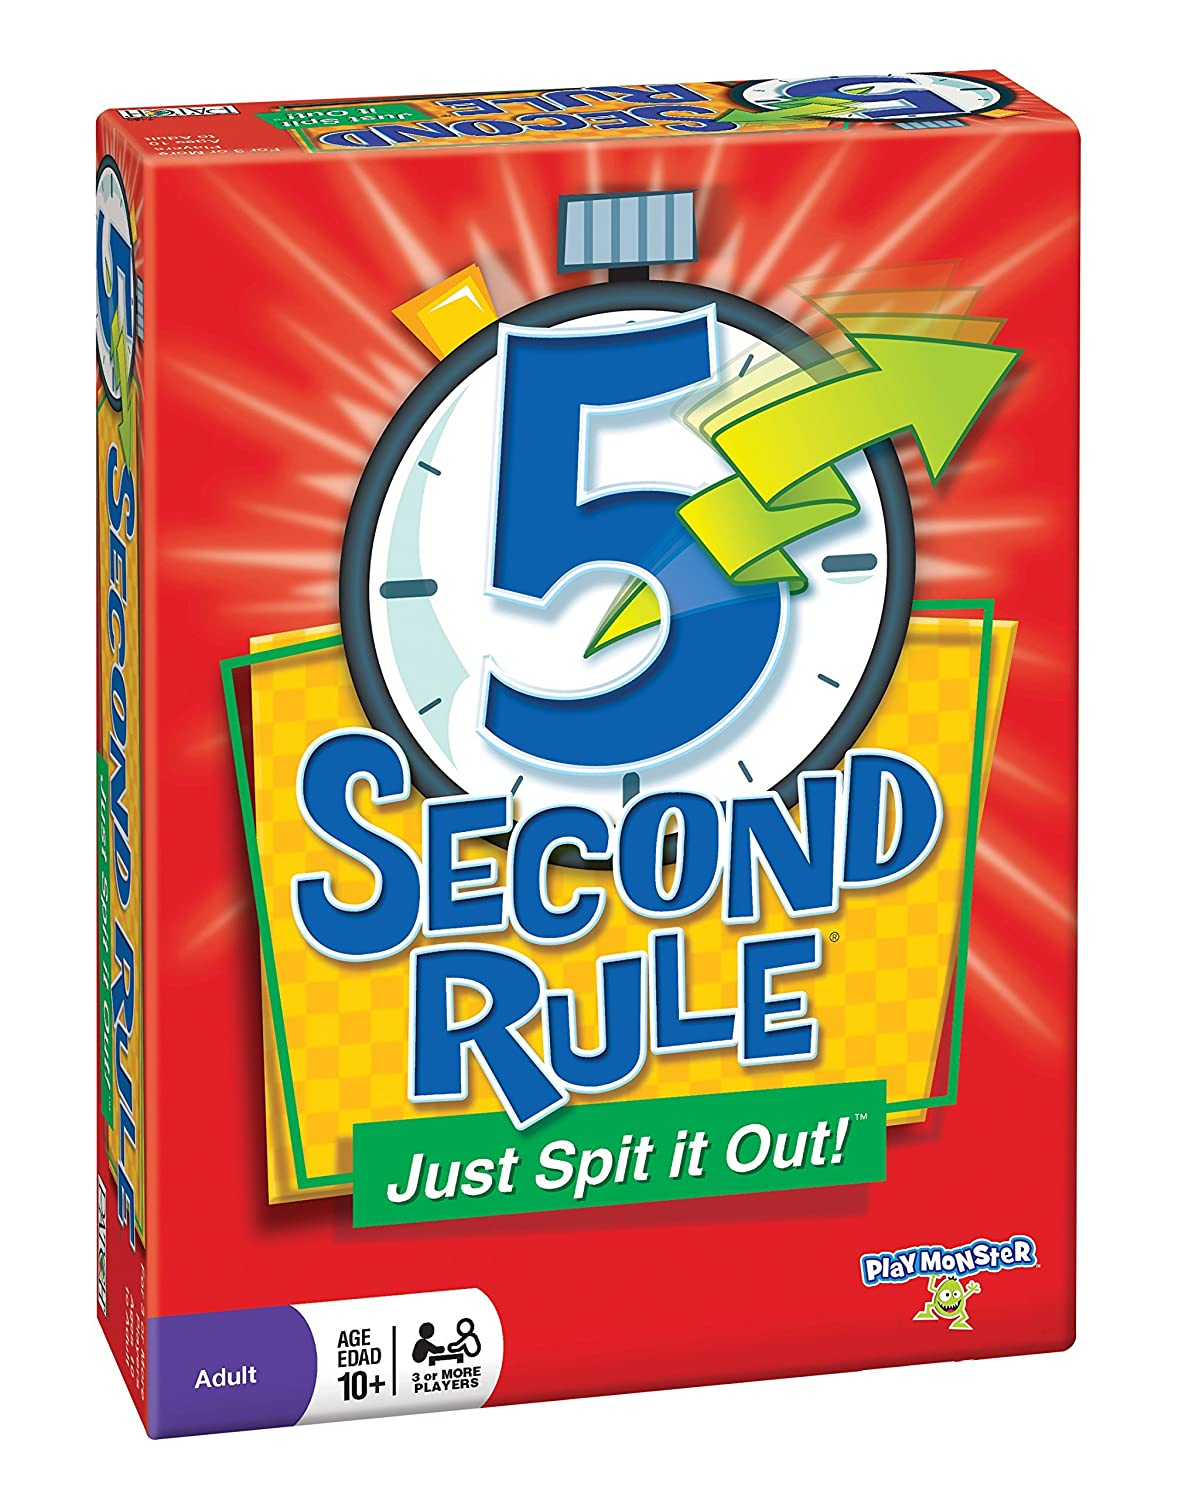 5 second rule boxset game